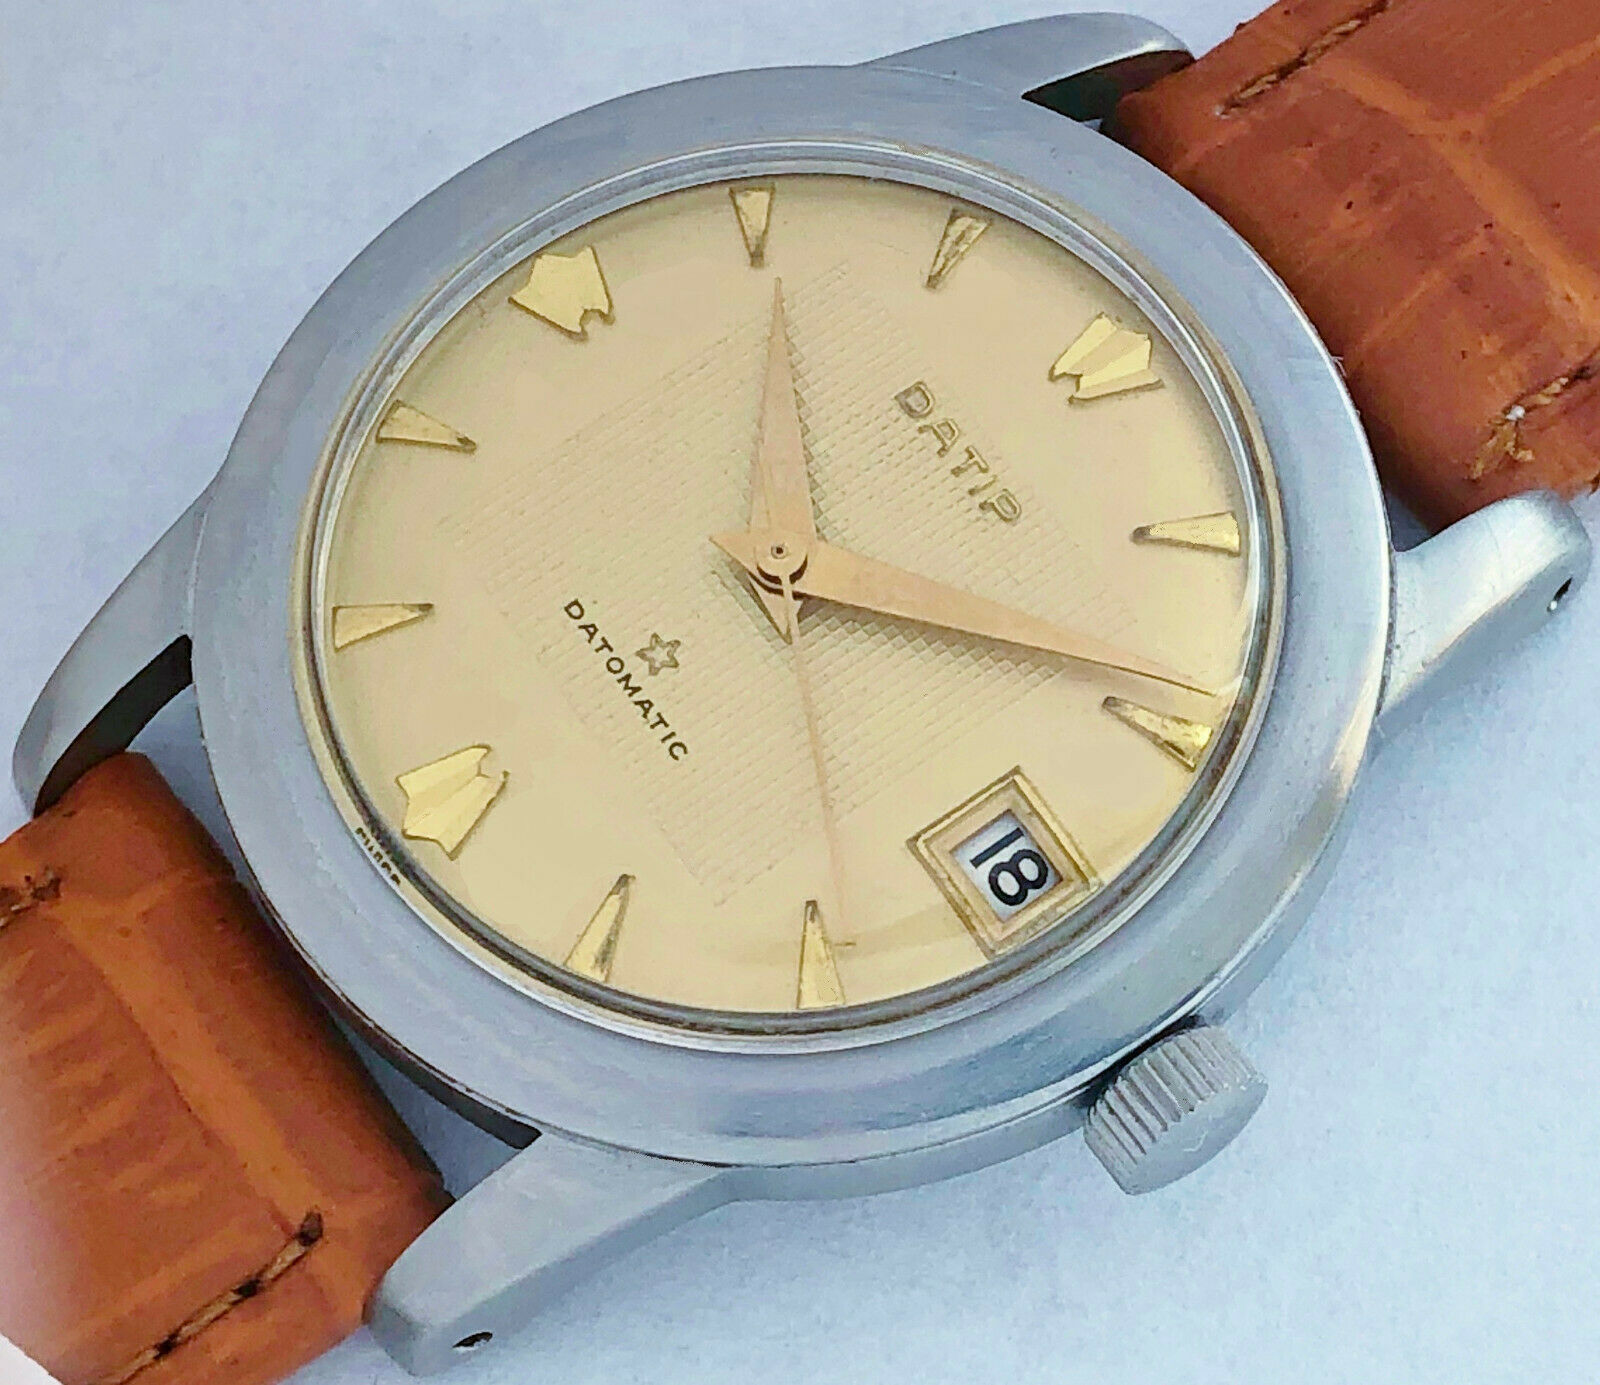 17 Jewels Swiss made Datip datomatic automatic Men's vintage wind up watch very